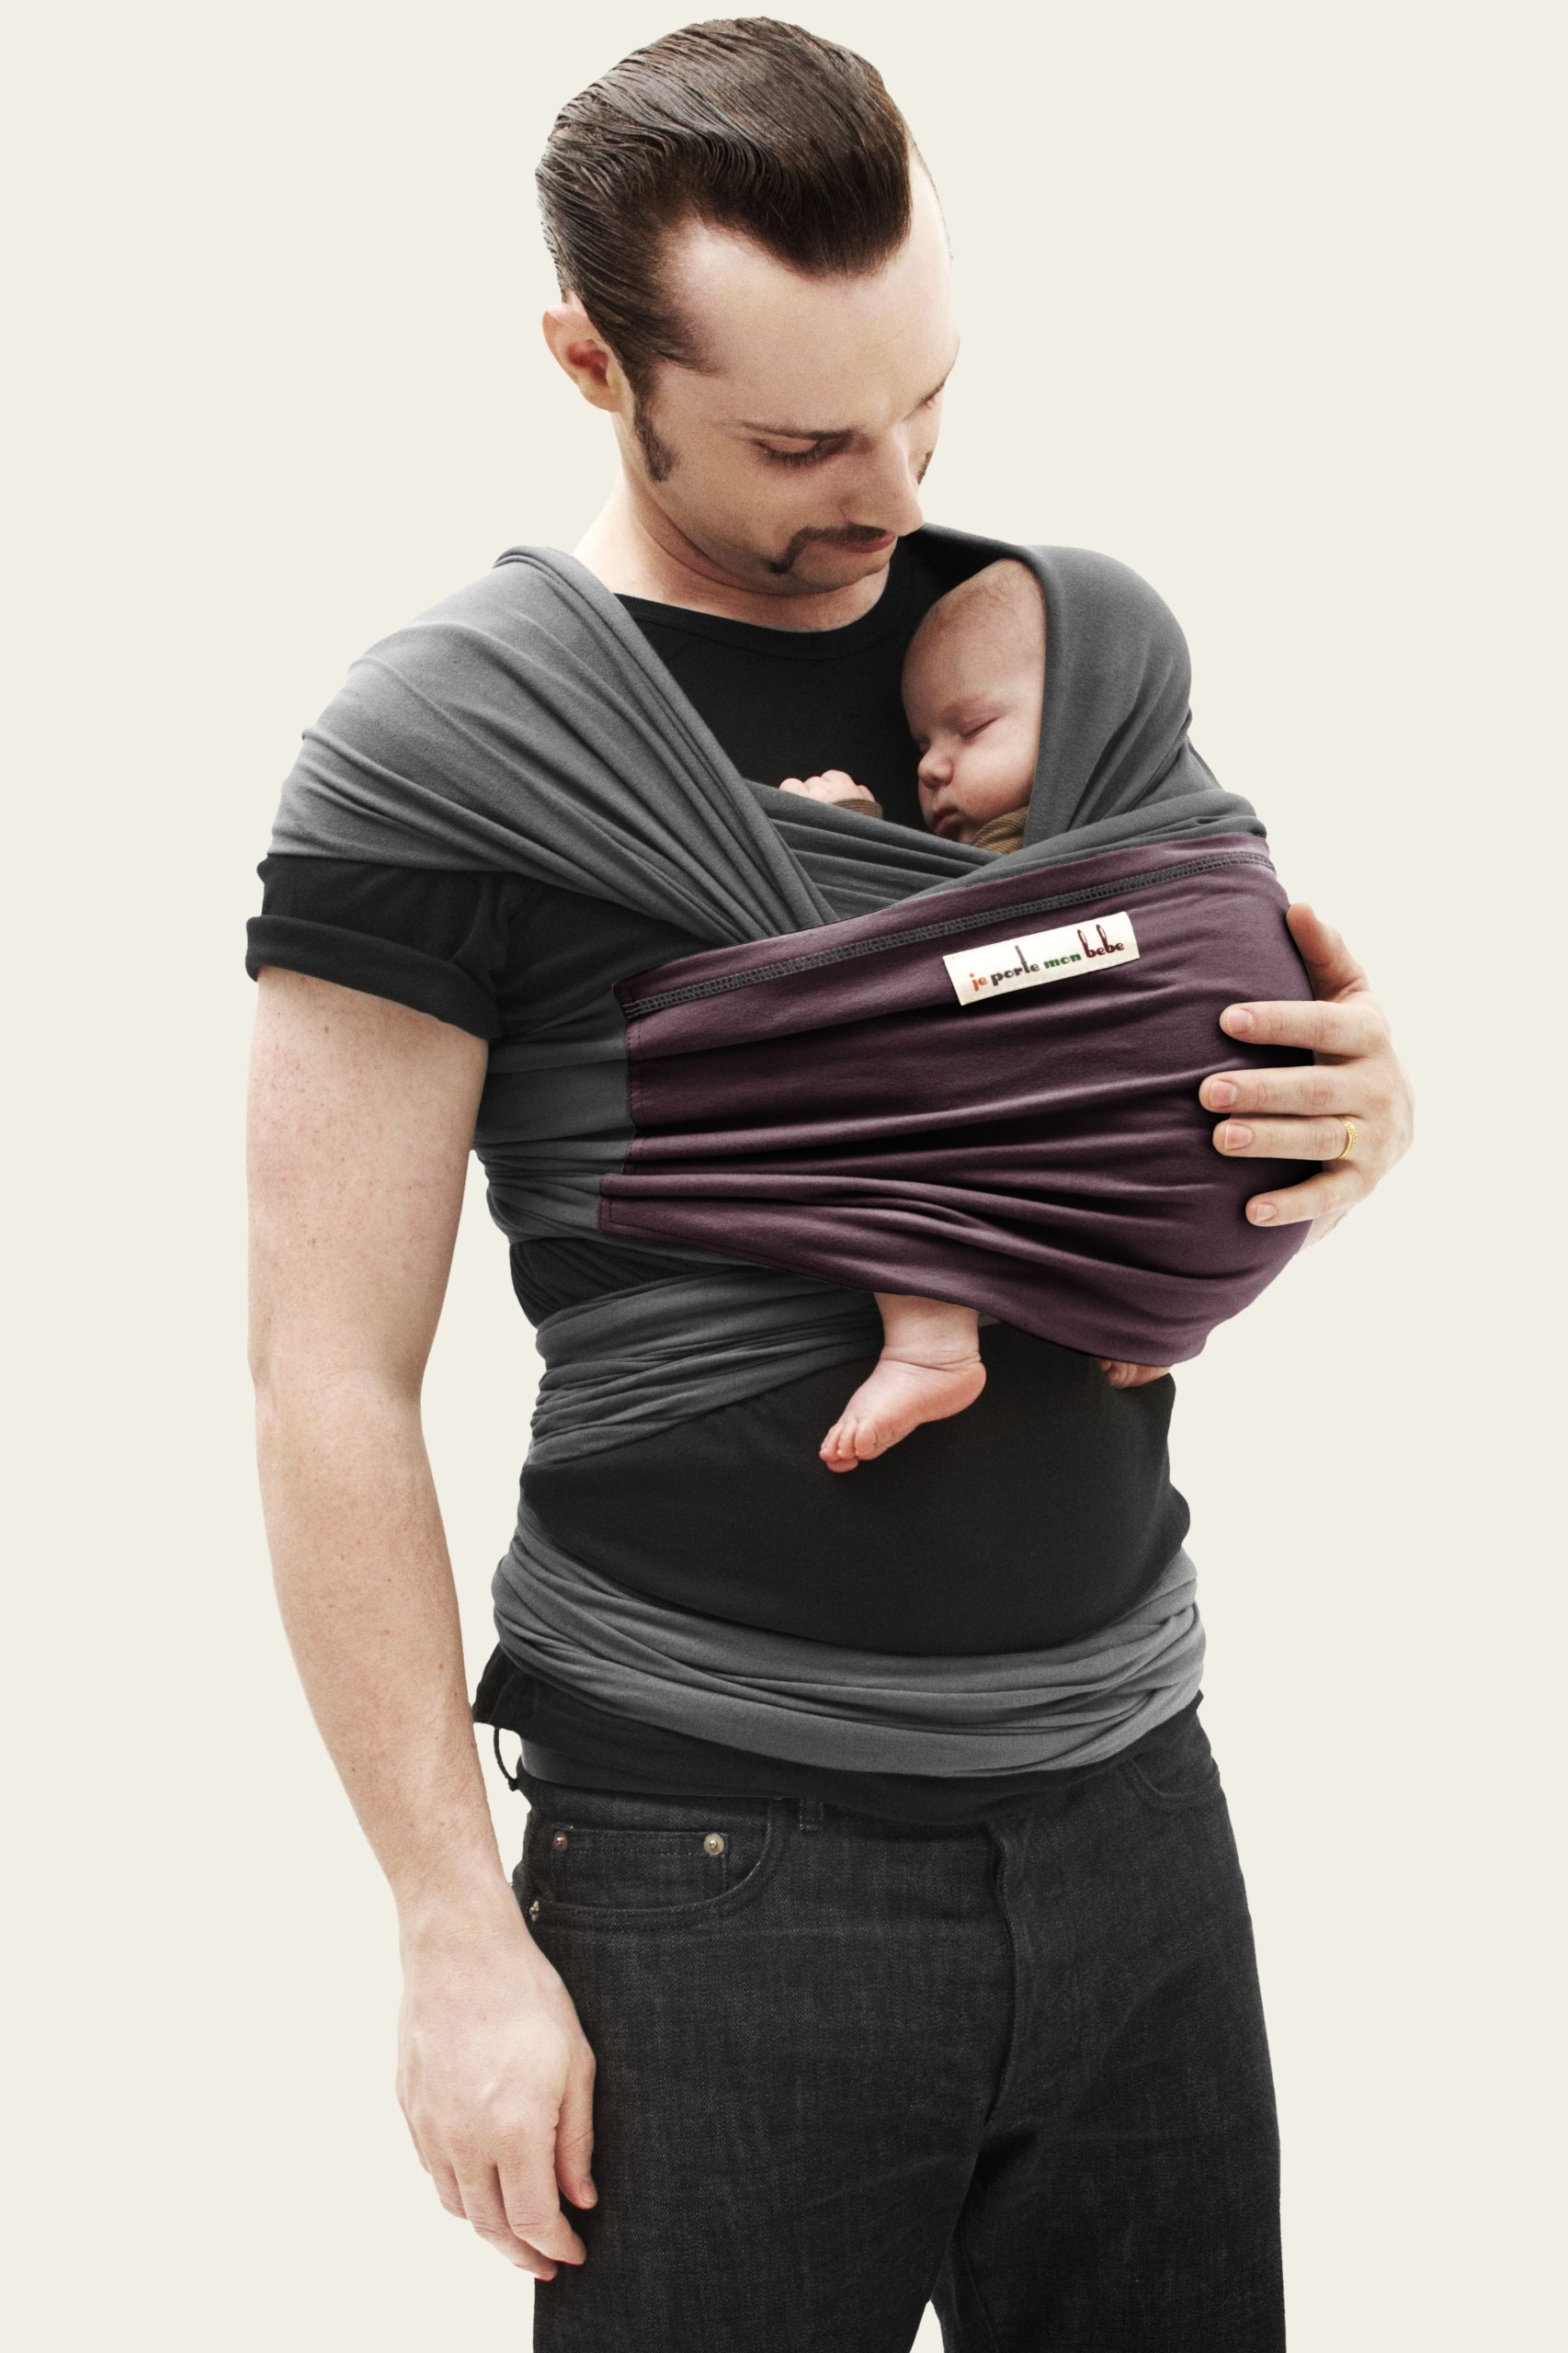 Je Porte Mon Bébé L'Originale Baby Sling Je Porte Mon Bébé High Quality Elastic Baby Carrier Dense, elastic and breathable material Great support, fits your baby's body like a second skin. 34